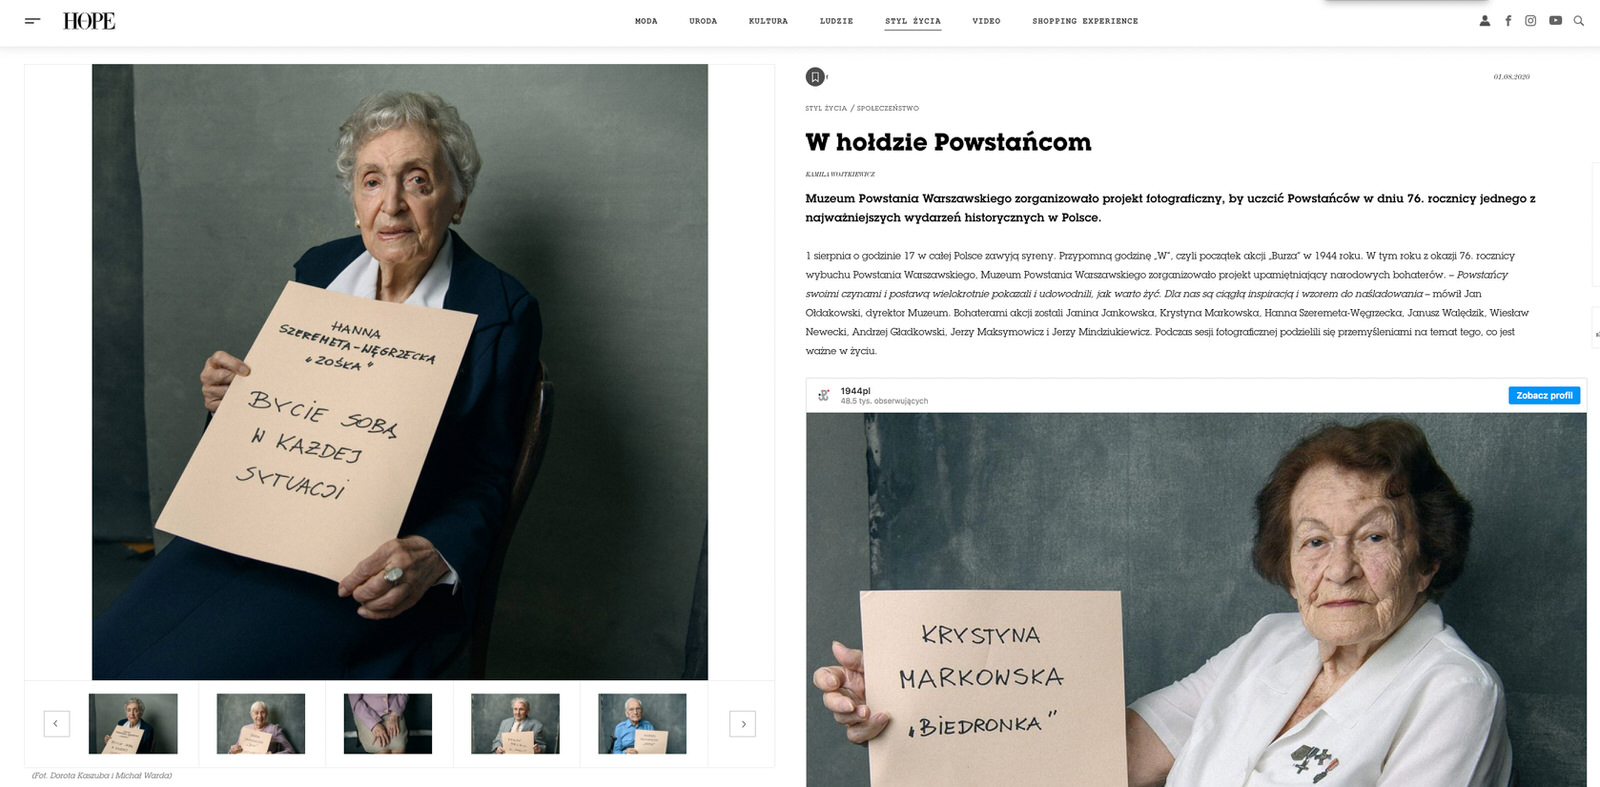 WhiteSmoke Studio Vogue Polska